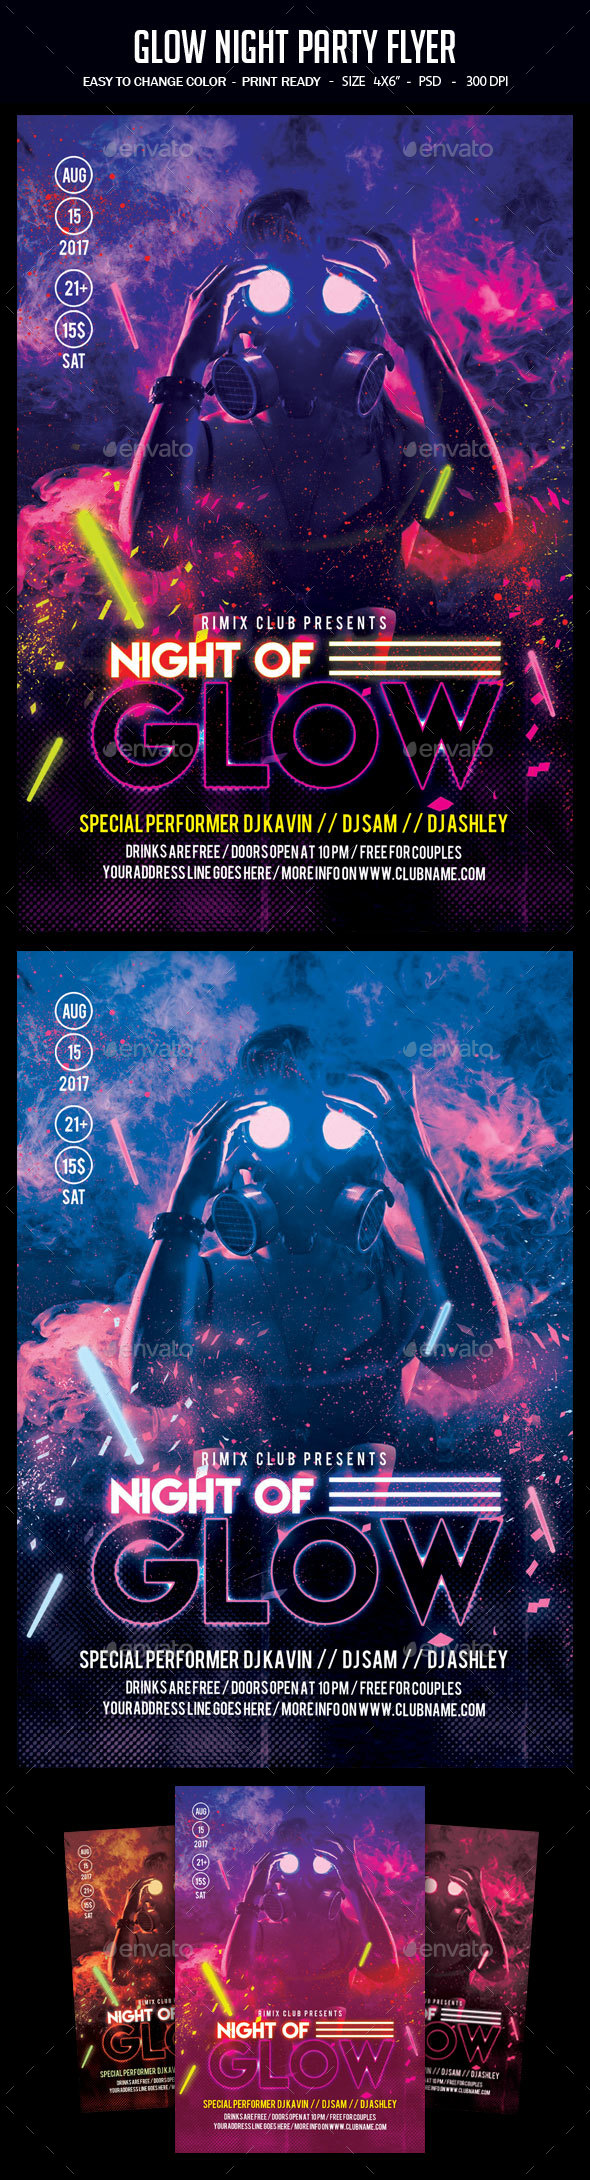 Glow Night Party Flyer - Clubs & Parties Events